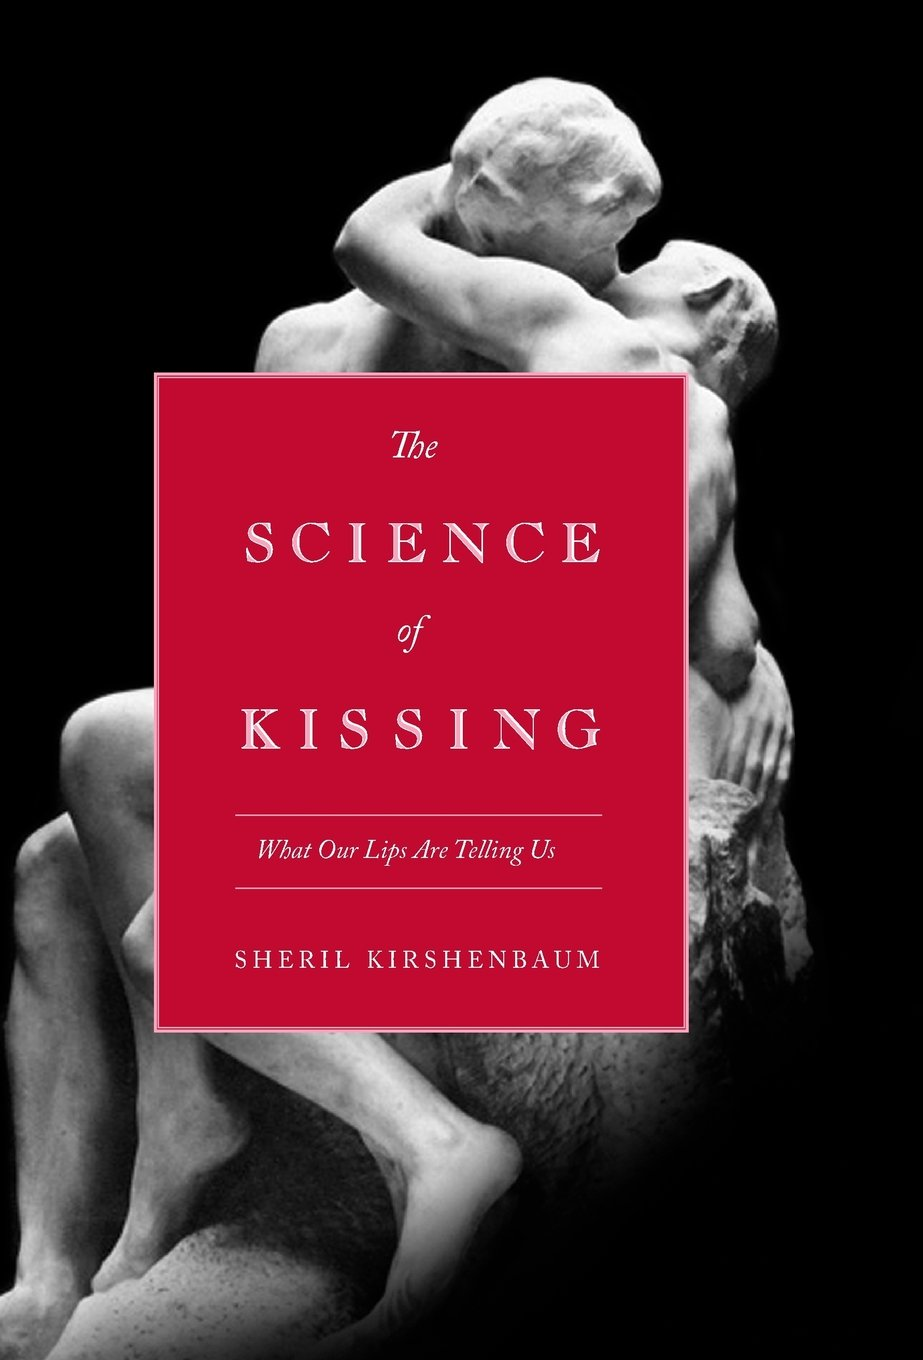 The Science of Kissing: What Our Lips Are Telling Us: Sheril Kirshenbaum:  9780446559904: Amazon.com: Books